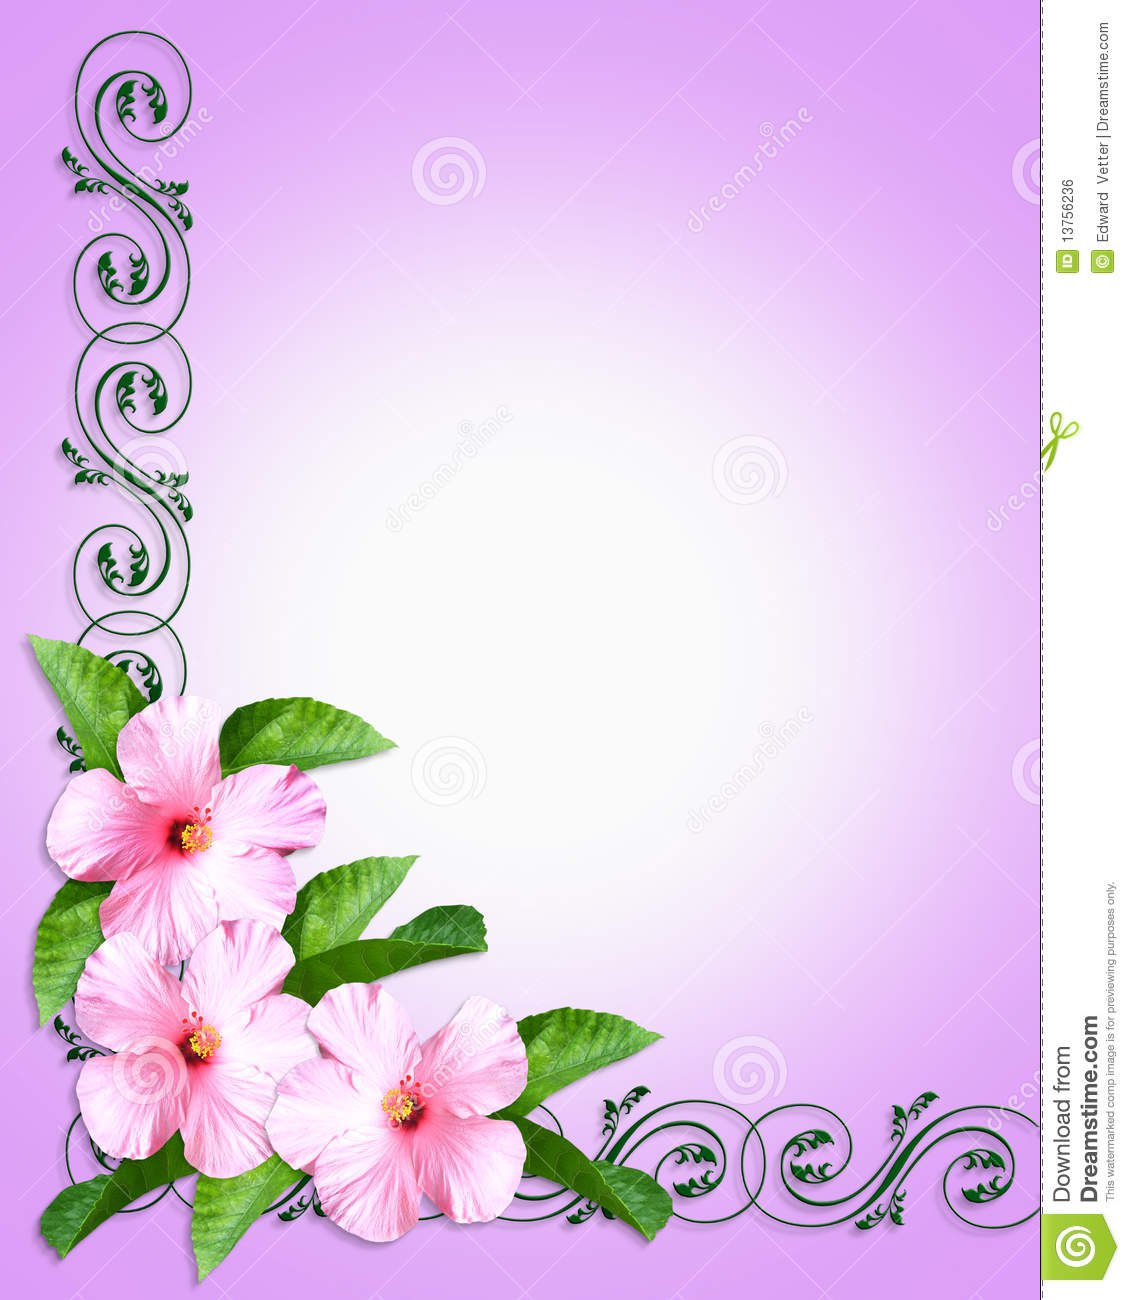 Party Invitation Background Images